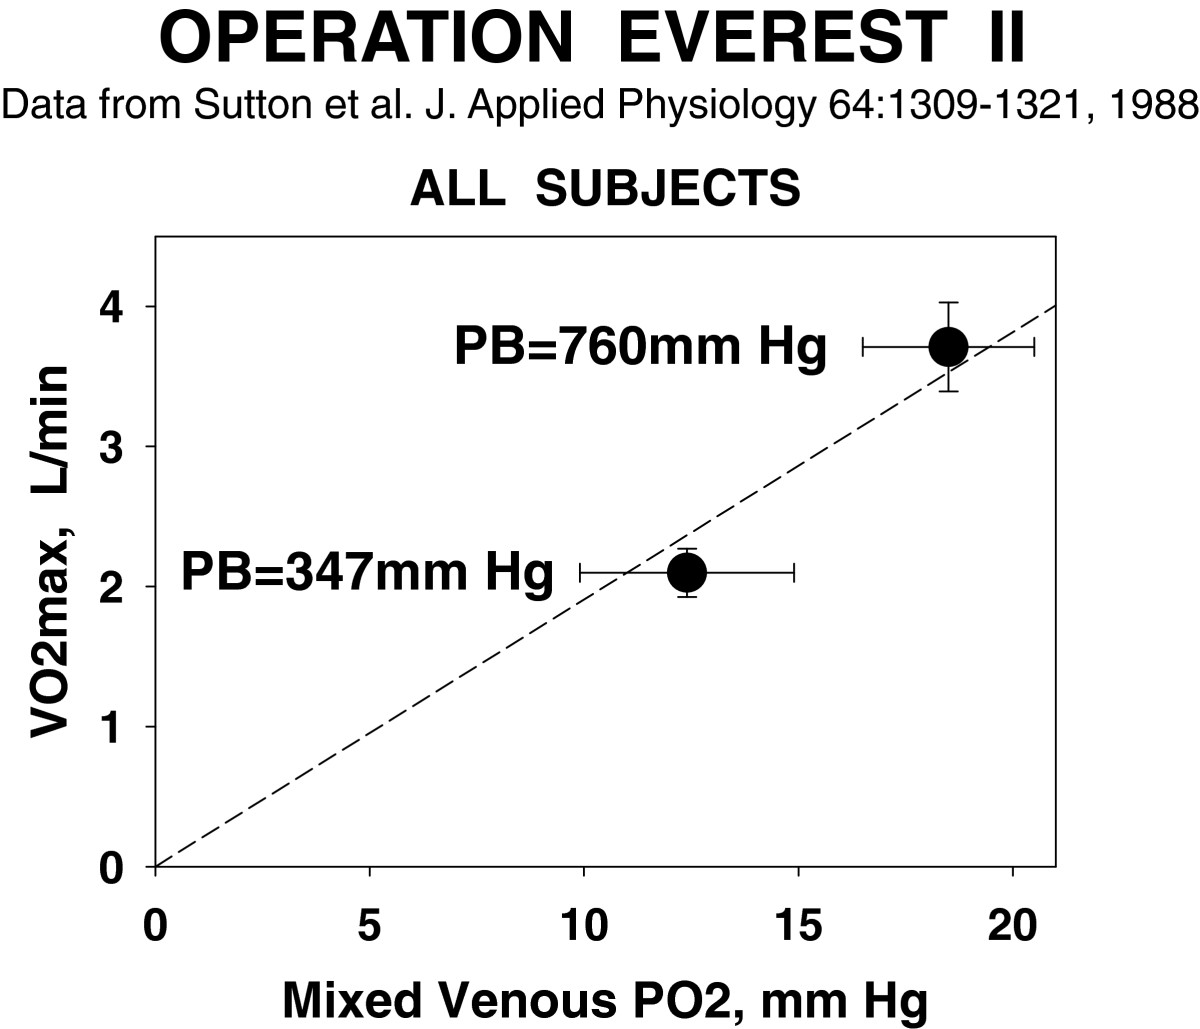 http://static-content.springer.com/image/art%3A10.1186%2F2046-7648-2-31/MediaObjects/13728_2013_Article_45_Fig5_HTML.jpg